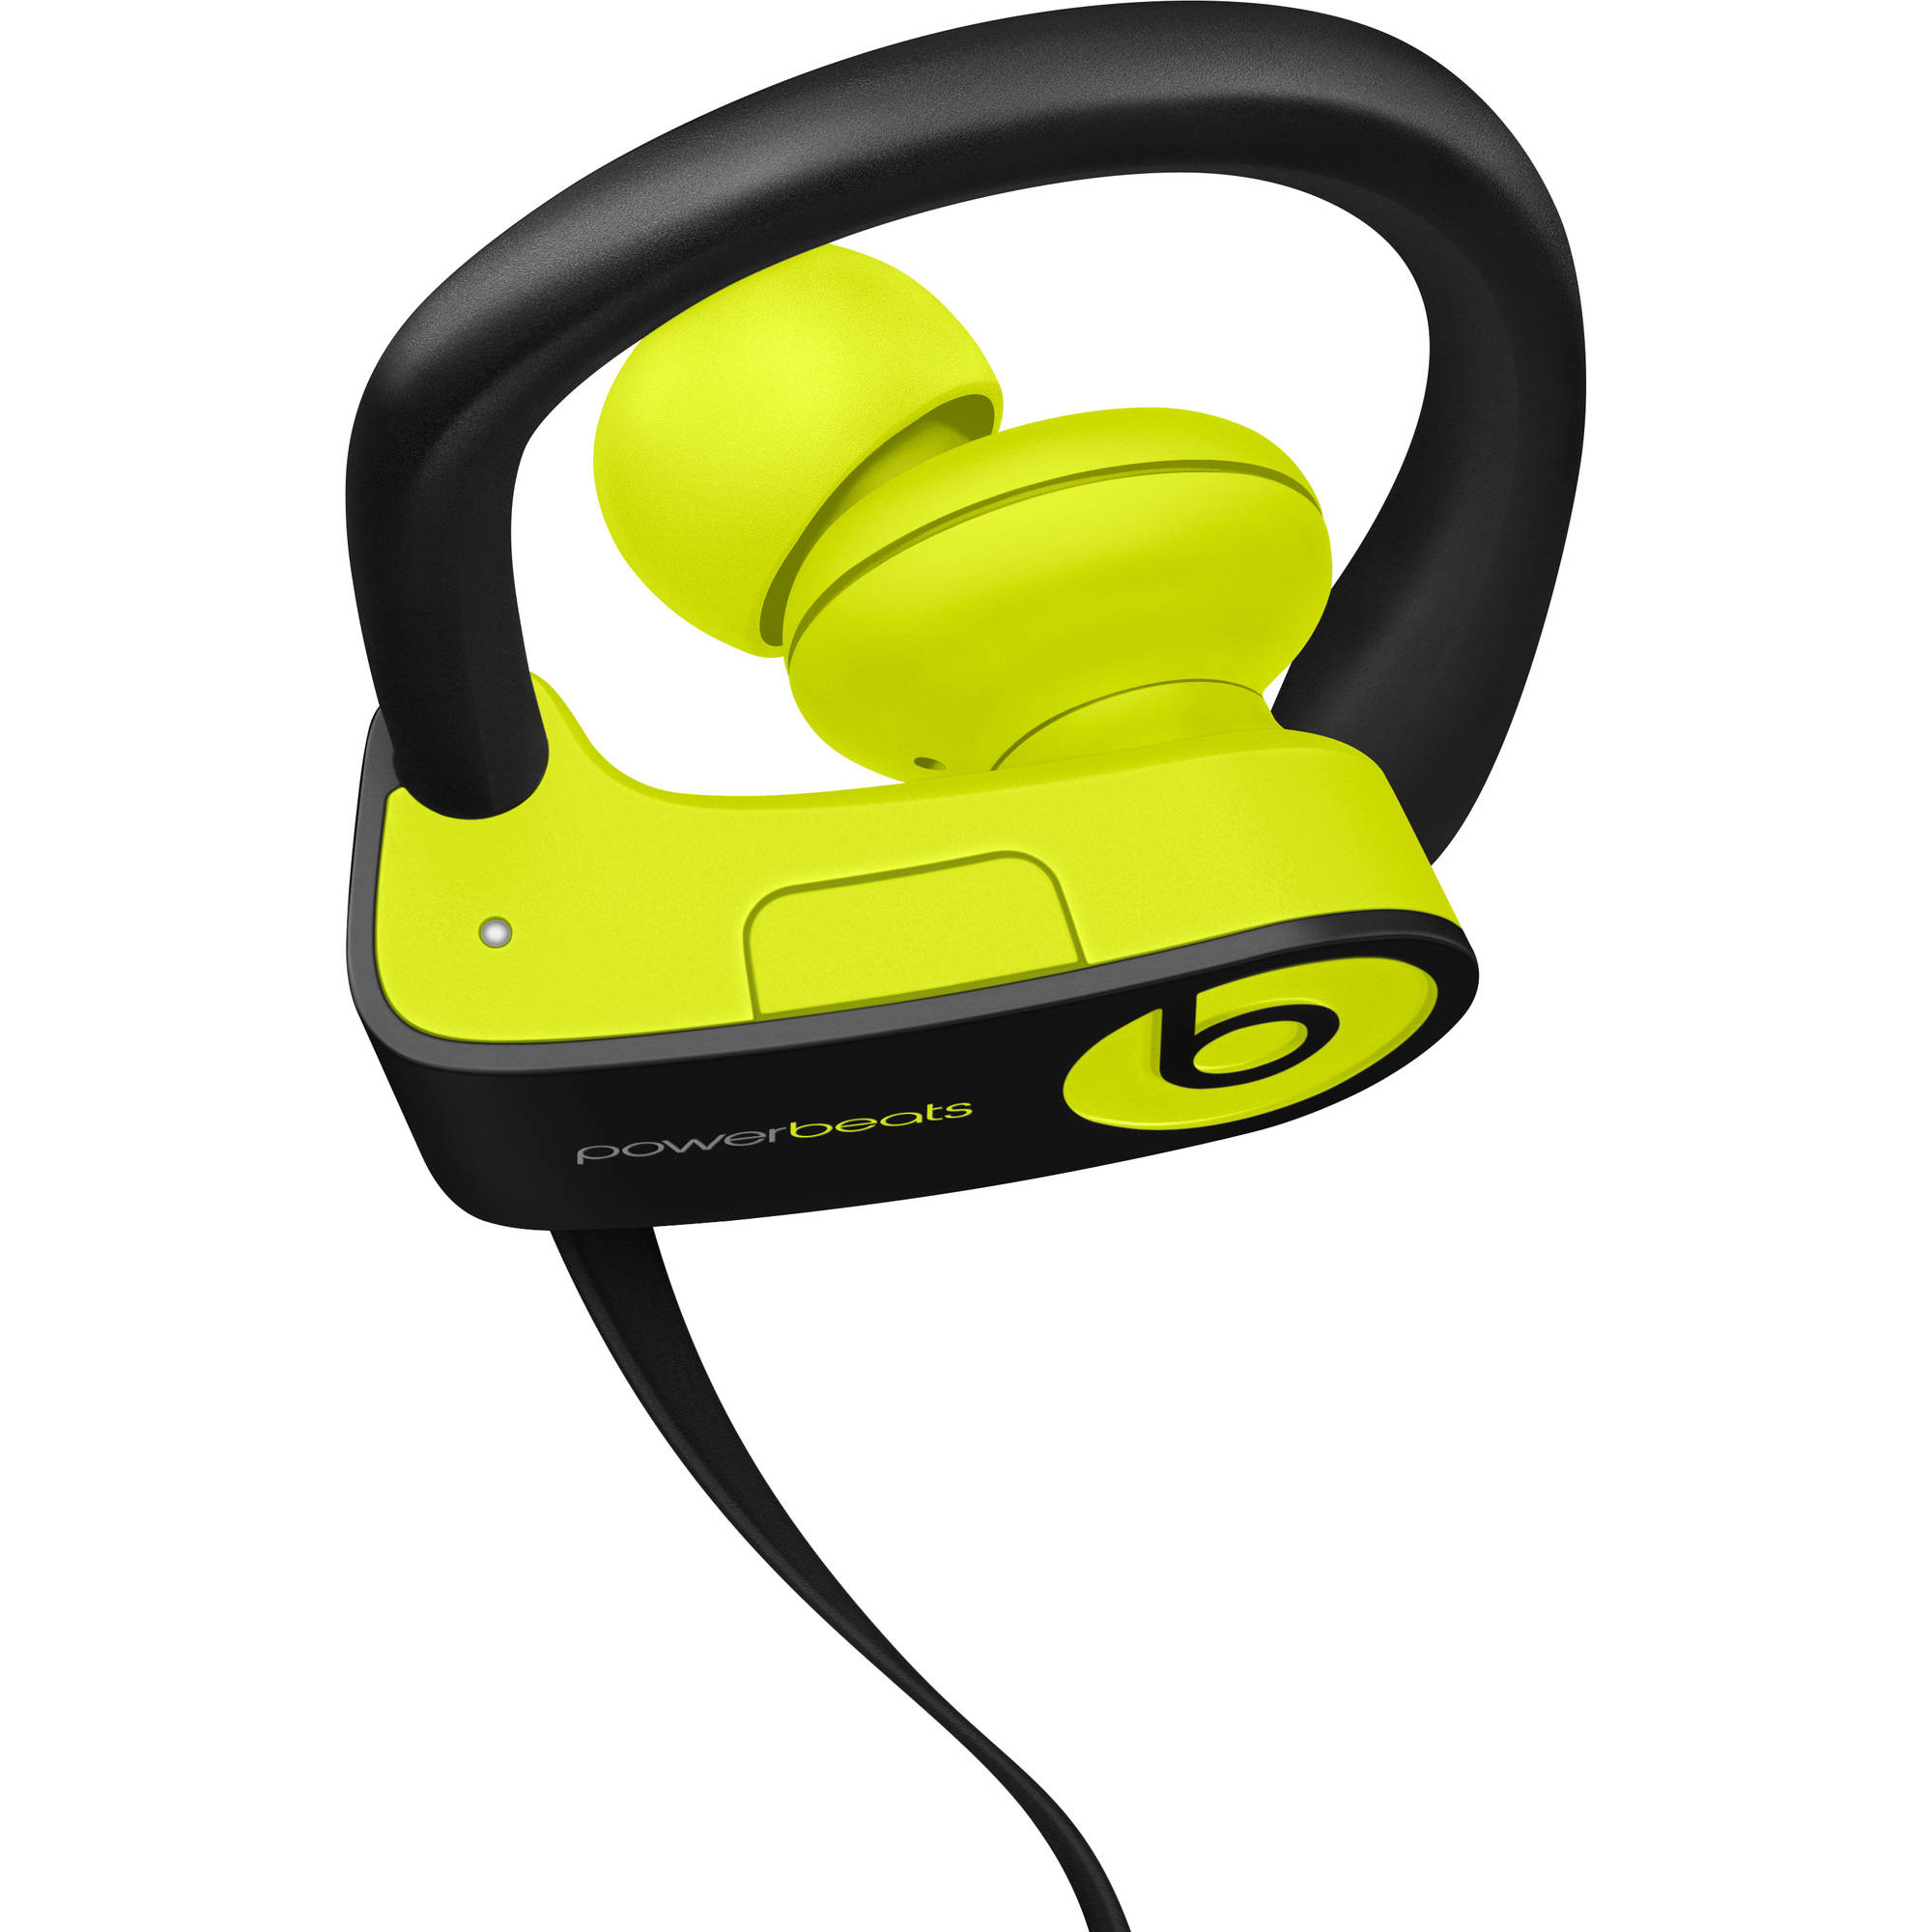 Refurbished Apple Beats Powerbeats3 Wireless Shock Yellow In Ear Headphones MNN02LL/A